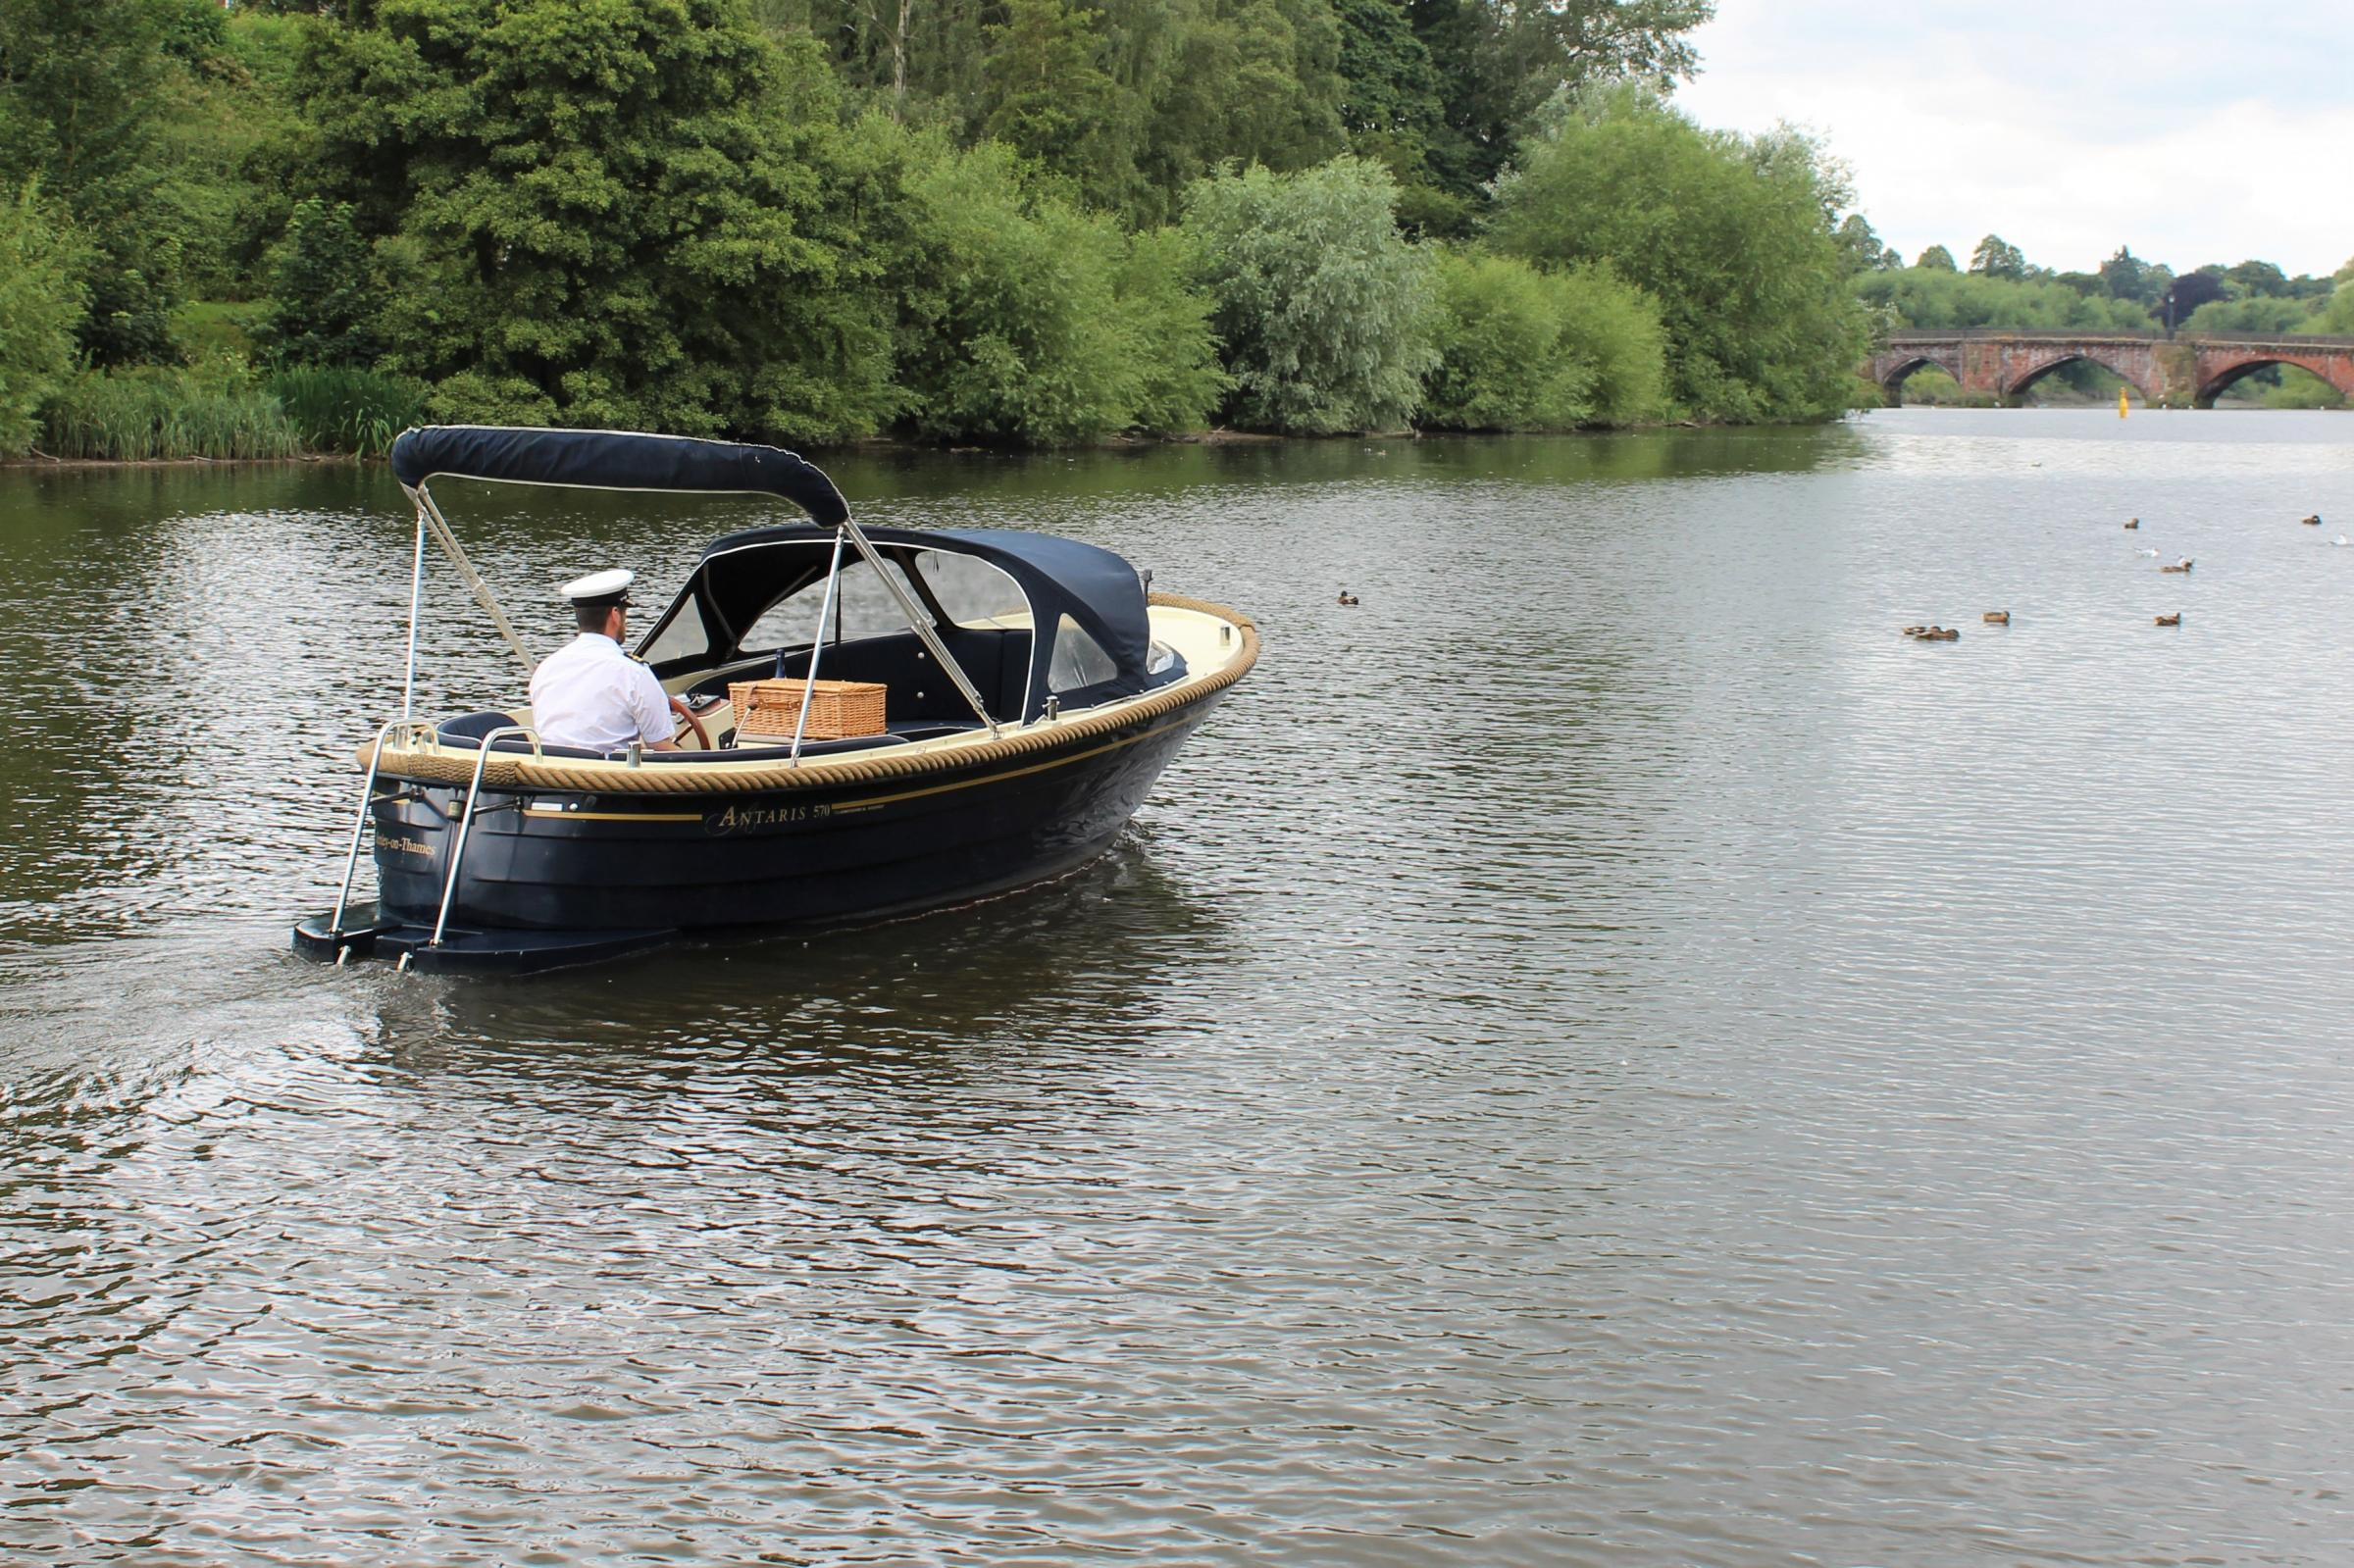 Chester Boat is skippering new private picnic trips on the river for up to six passengers.